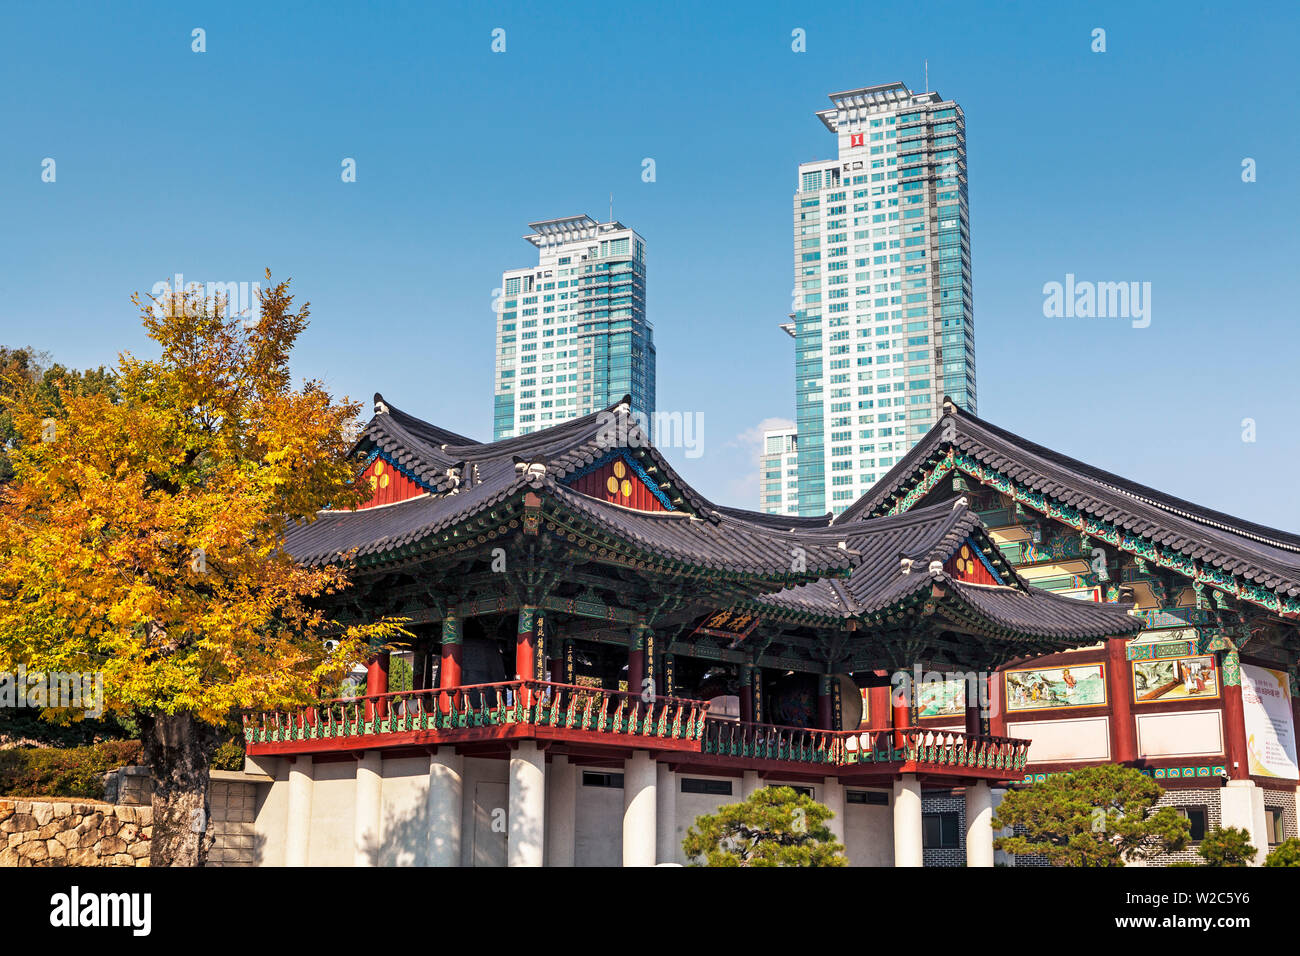 Bongeunsa Temple Grounds And Modern Architecture In The